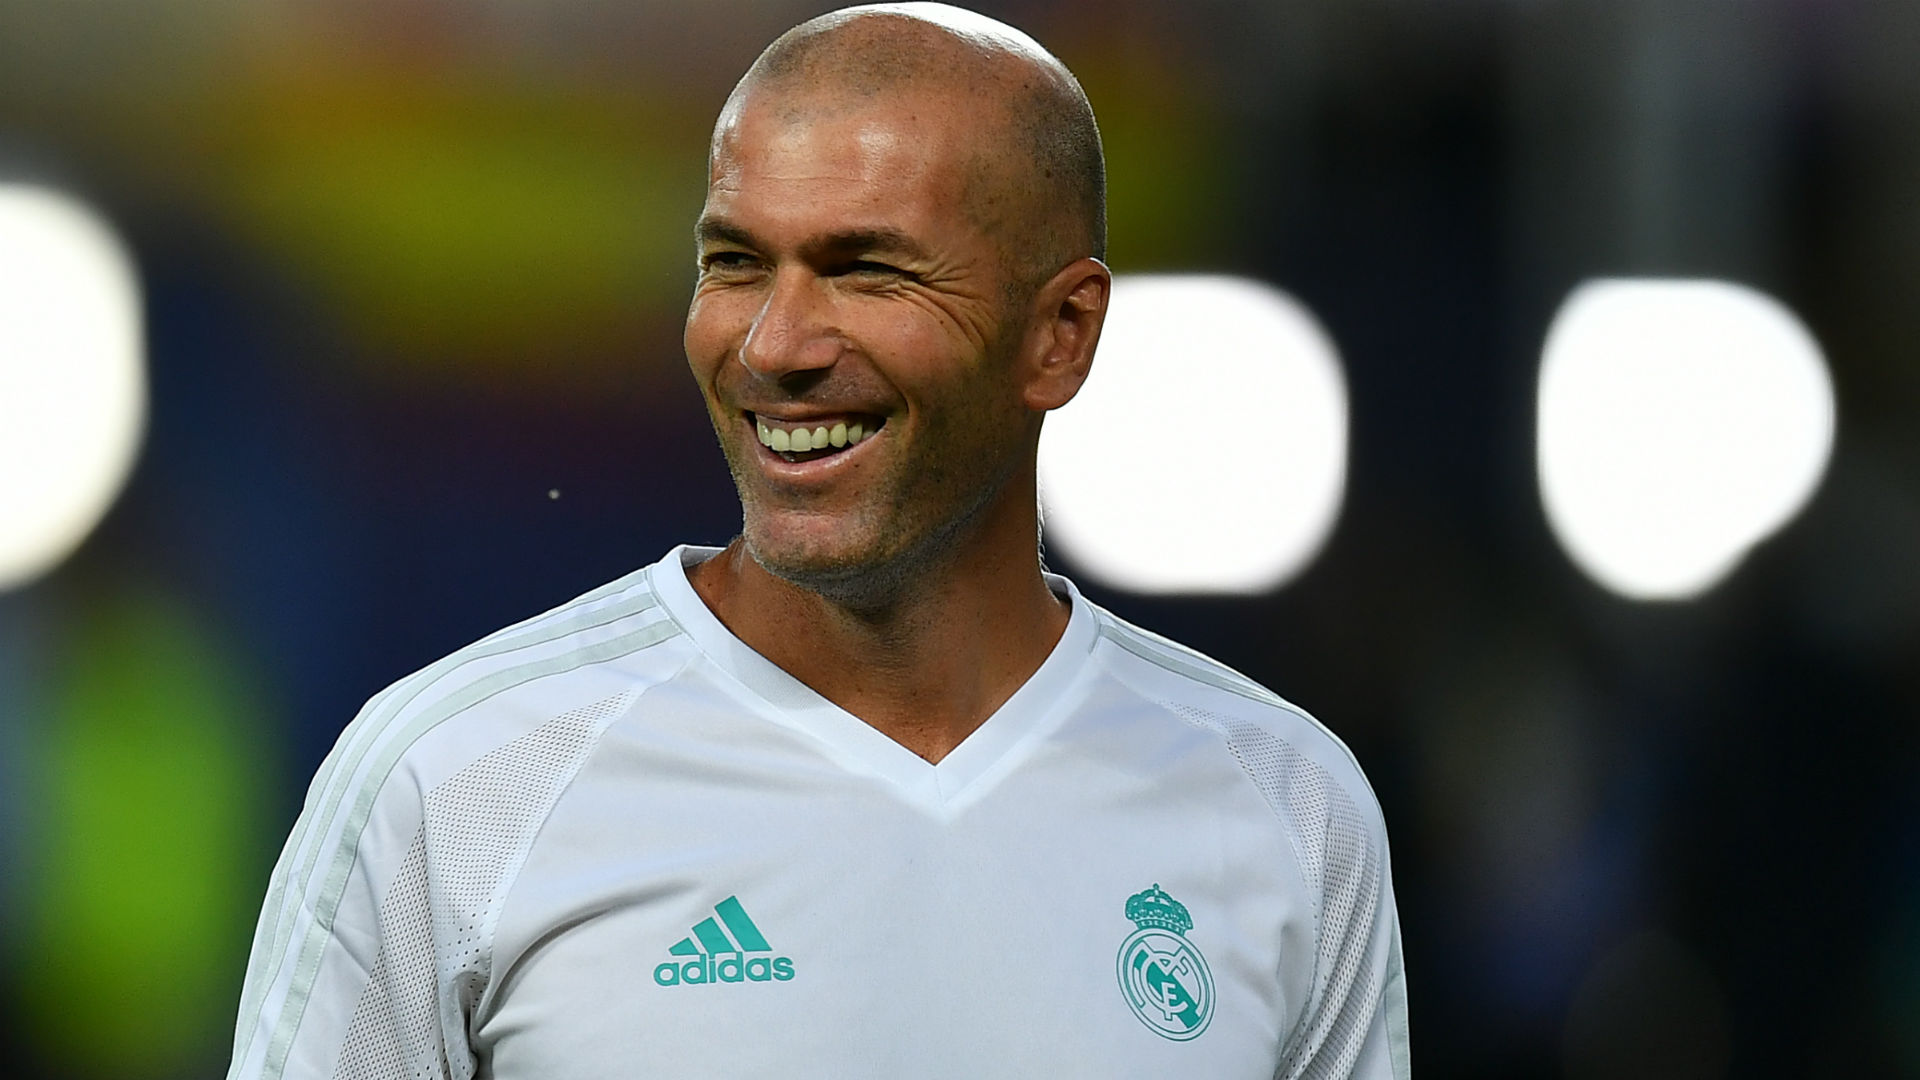 Ronaldo rested and ready for Barca in Spanish Super Cup